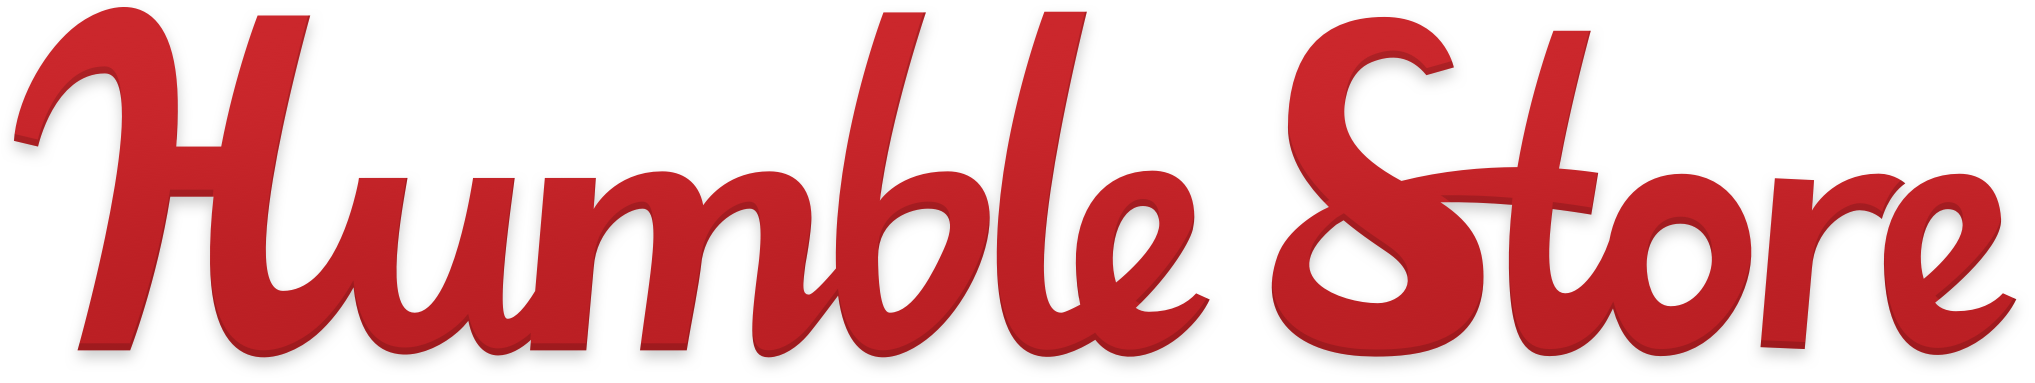 Image result for Humble logo